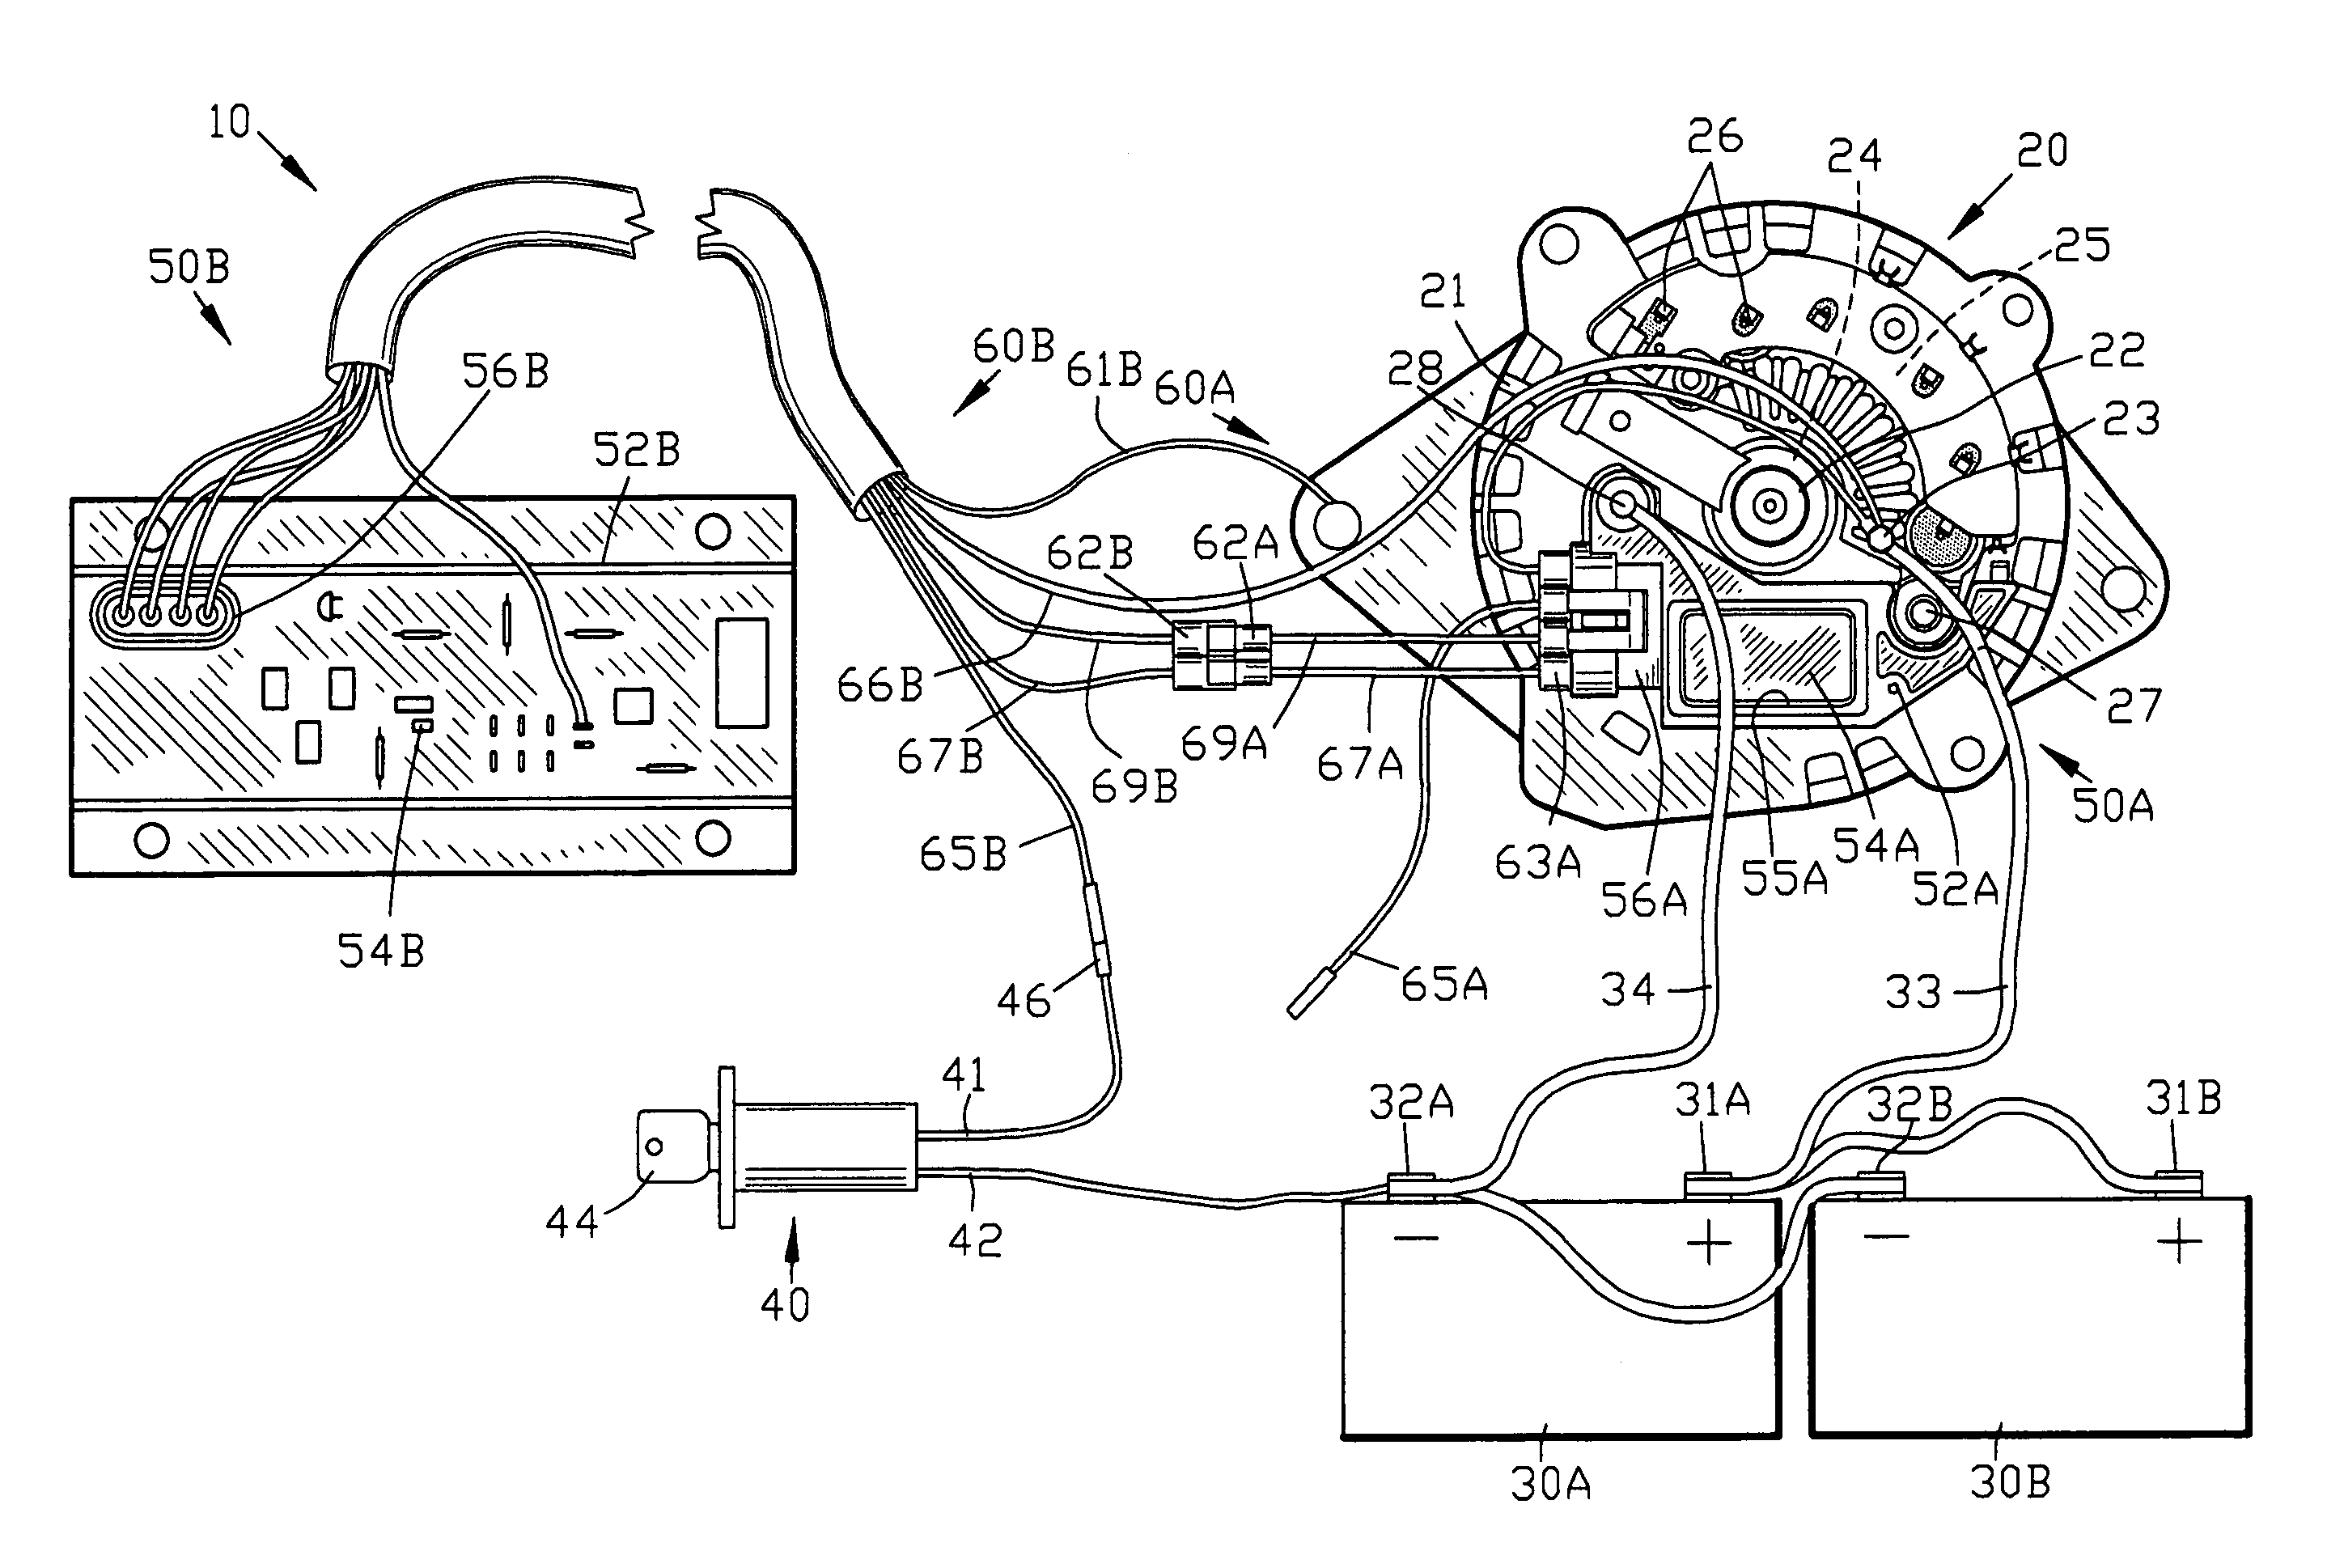 US07245111 20070717 D00000 patent us7245111 regulator system for alternator google patents valeo alternator regulator wiring diagram at soozxer.org